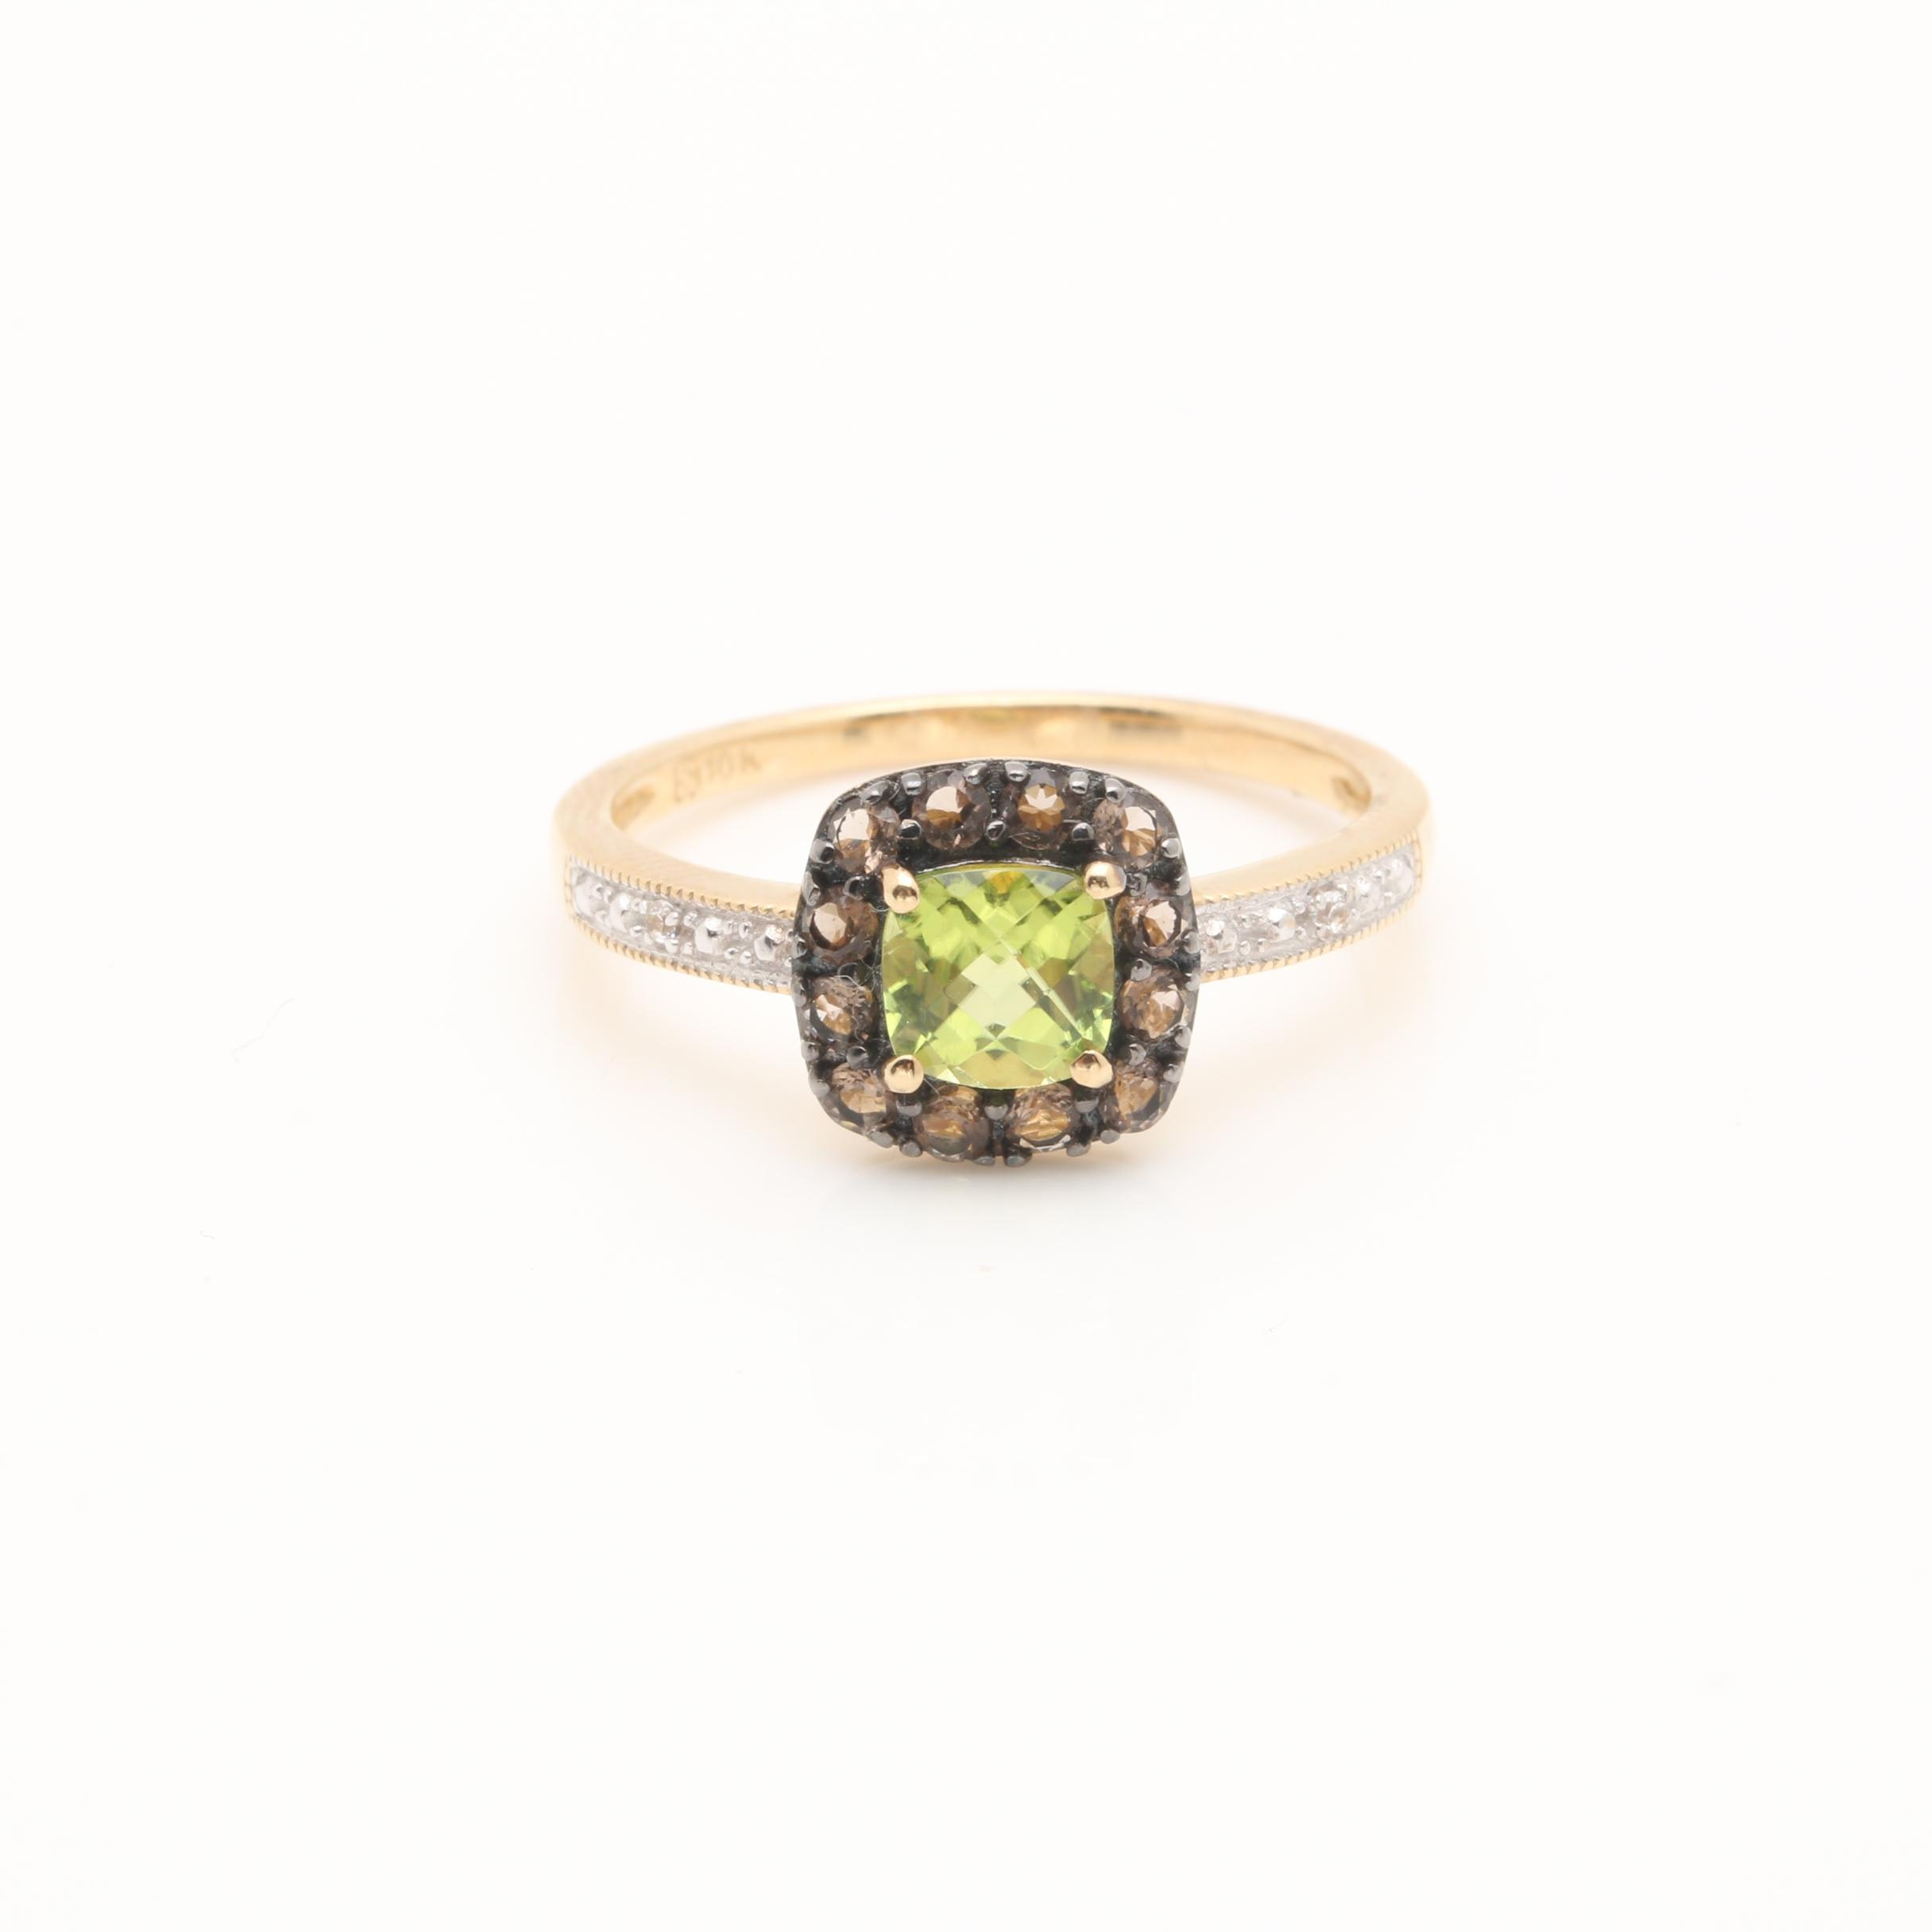 10K Two Tone Gold Peridot, Smoky Quartz and White Sapphire Ring